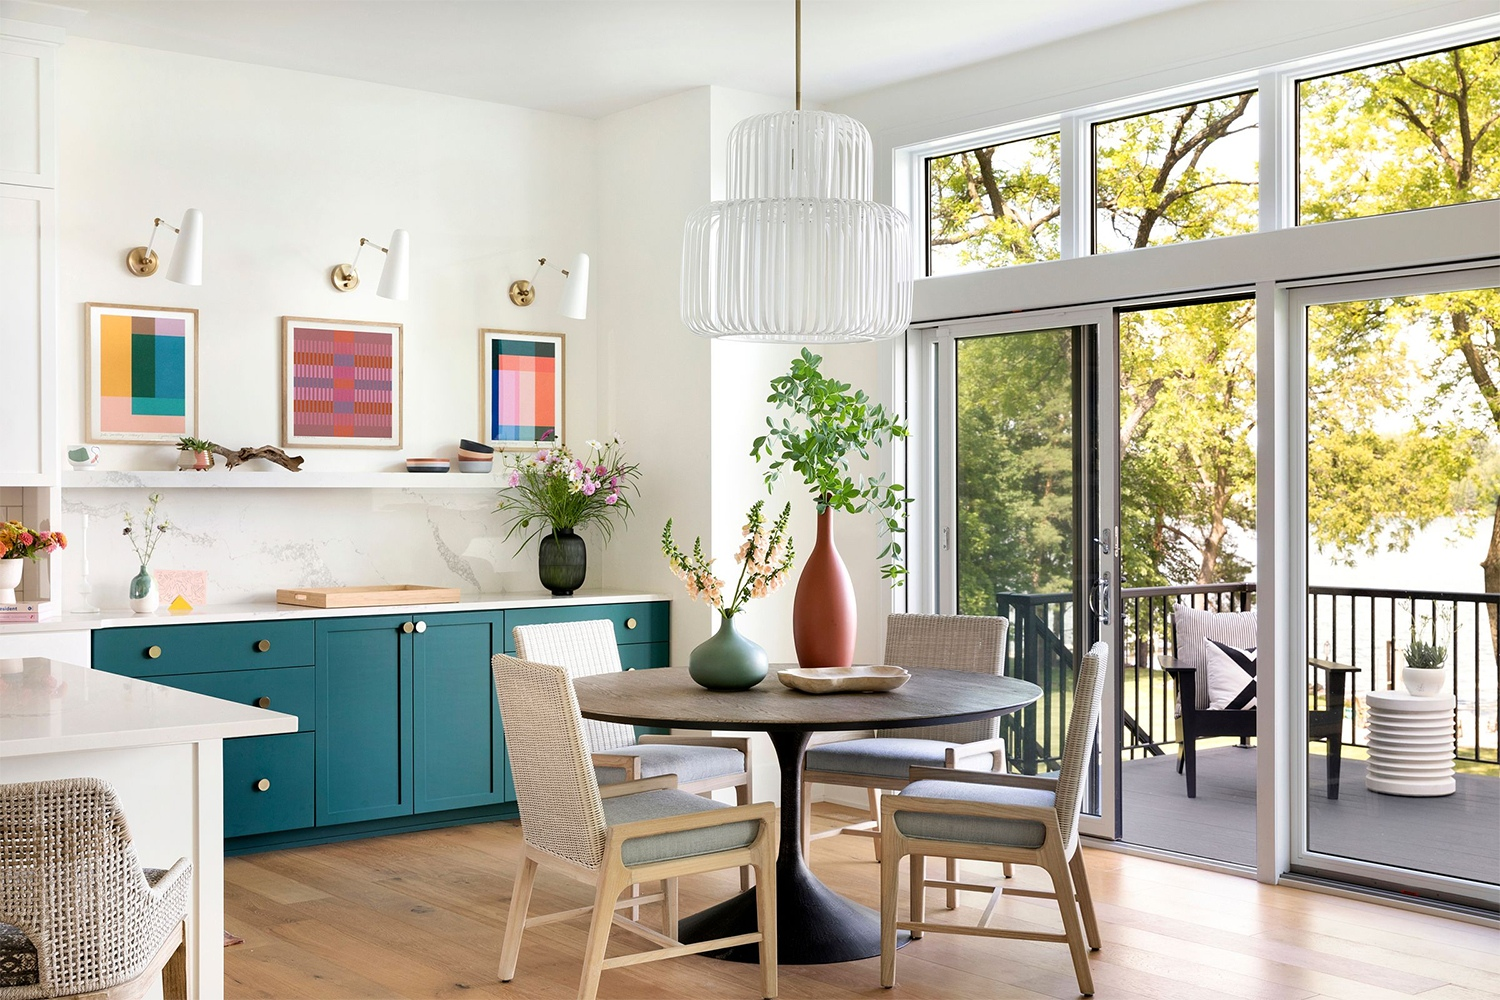 Lucy Interior Design, Lucy's Joyful Kitchen